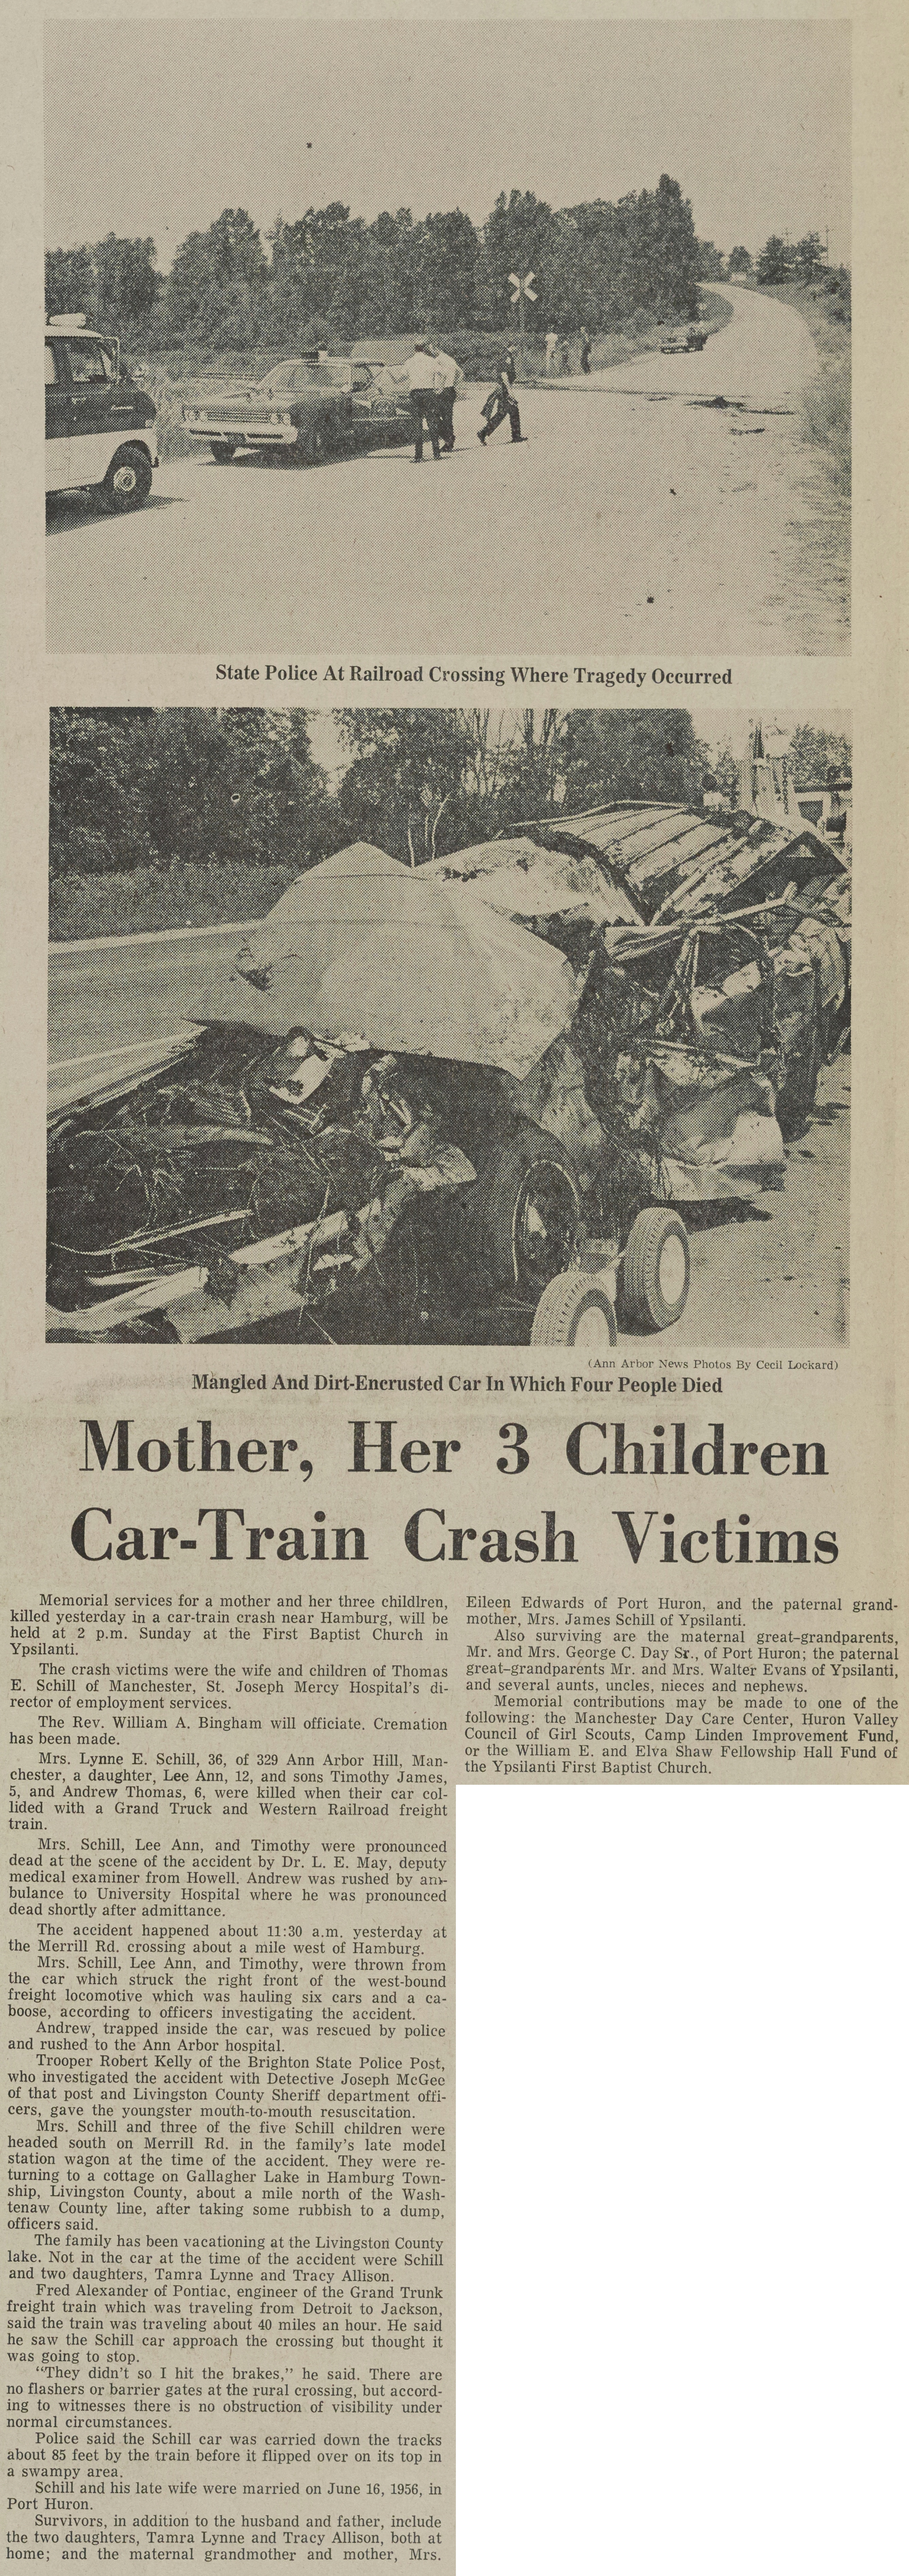 Mother, Her 3 Children Car-Train Crash Victims image